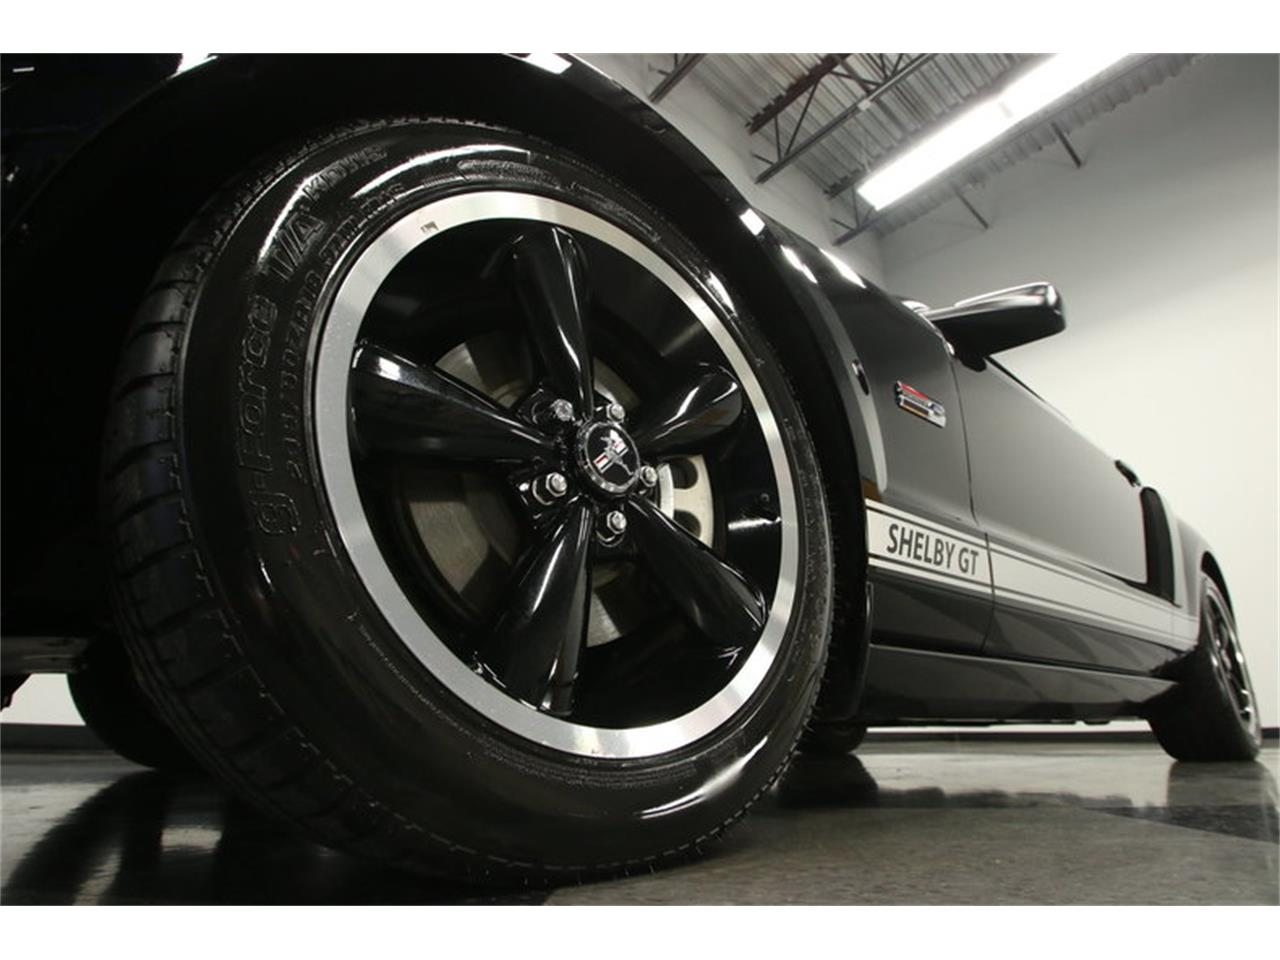 Large Picture of '07 Shelby GT - $29,995.00 Offered by Streetside Classics - Tampa - MO4G